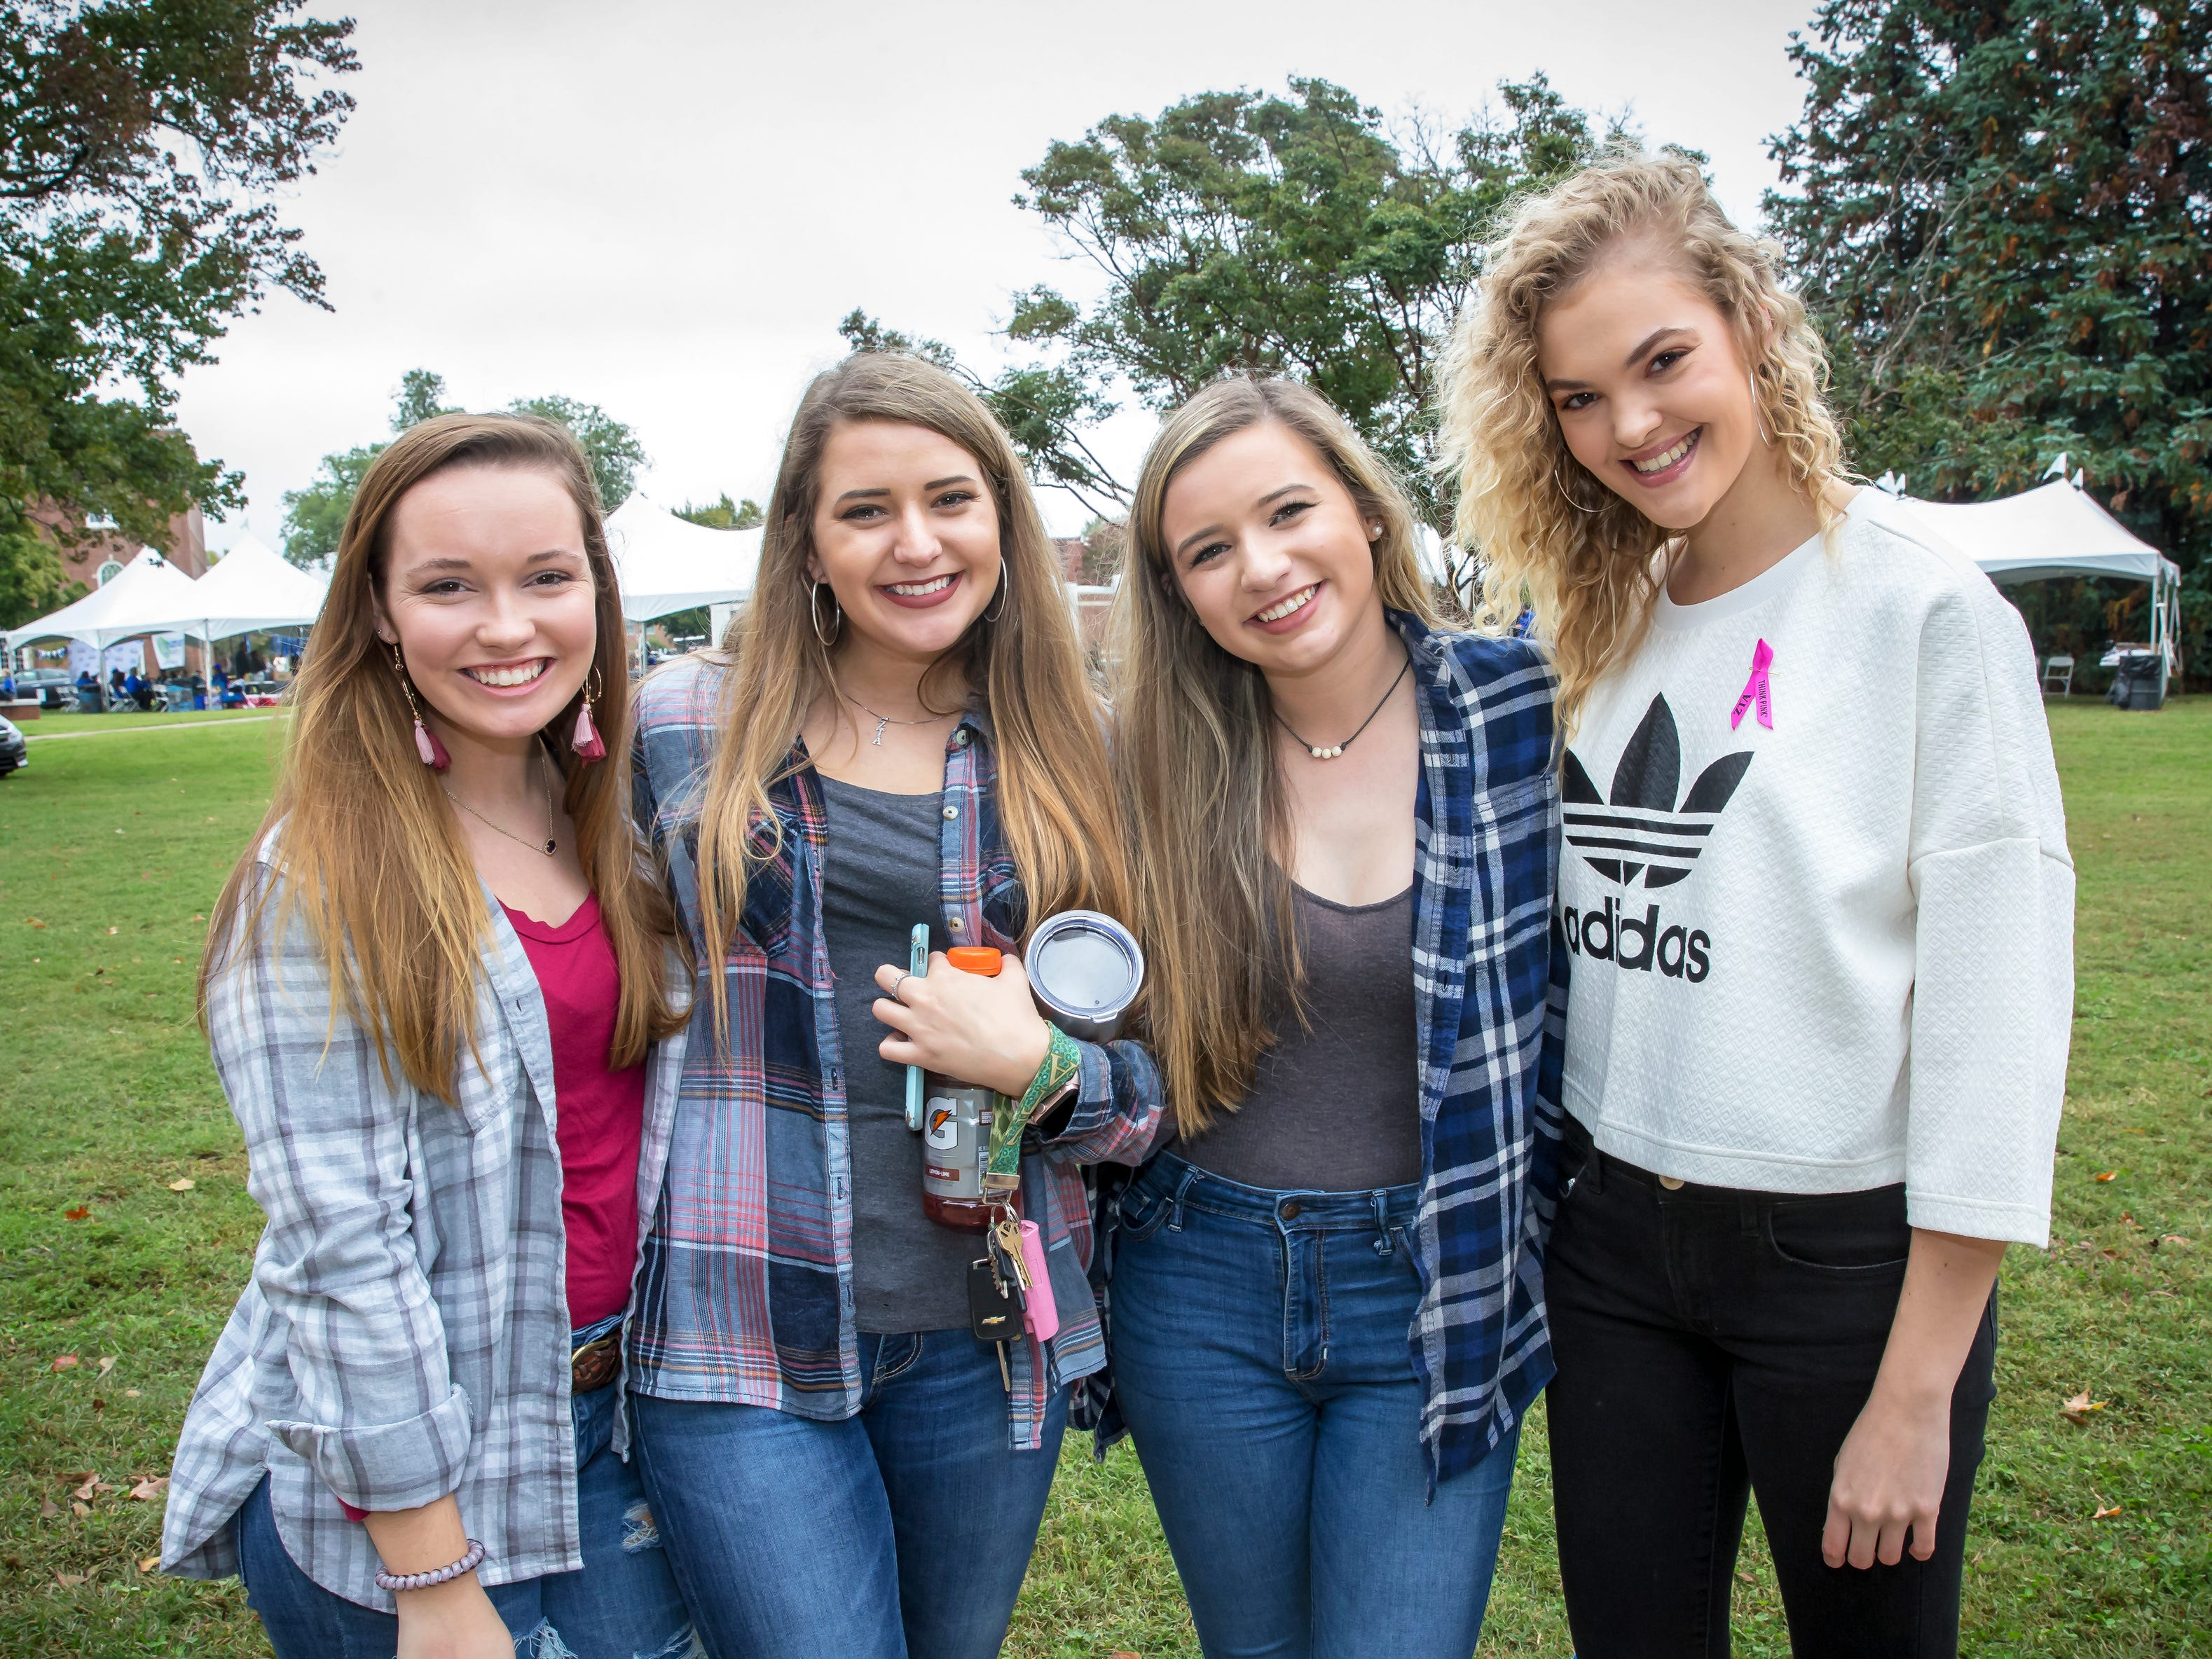 Madison Crawford, Carrie Staples, Katelyn White and Alana Landtroop tailgating at MTSU homecoming.